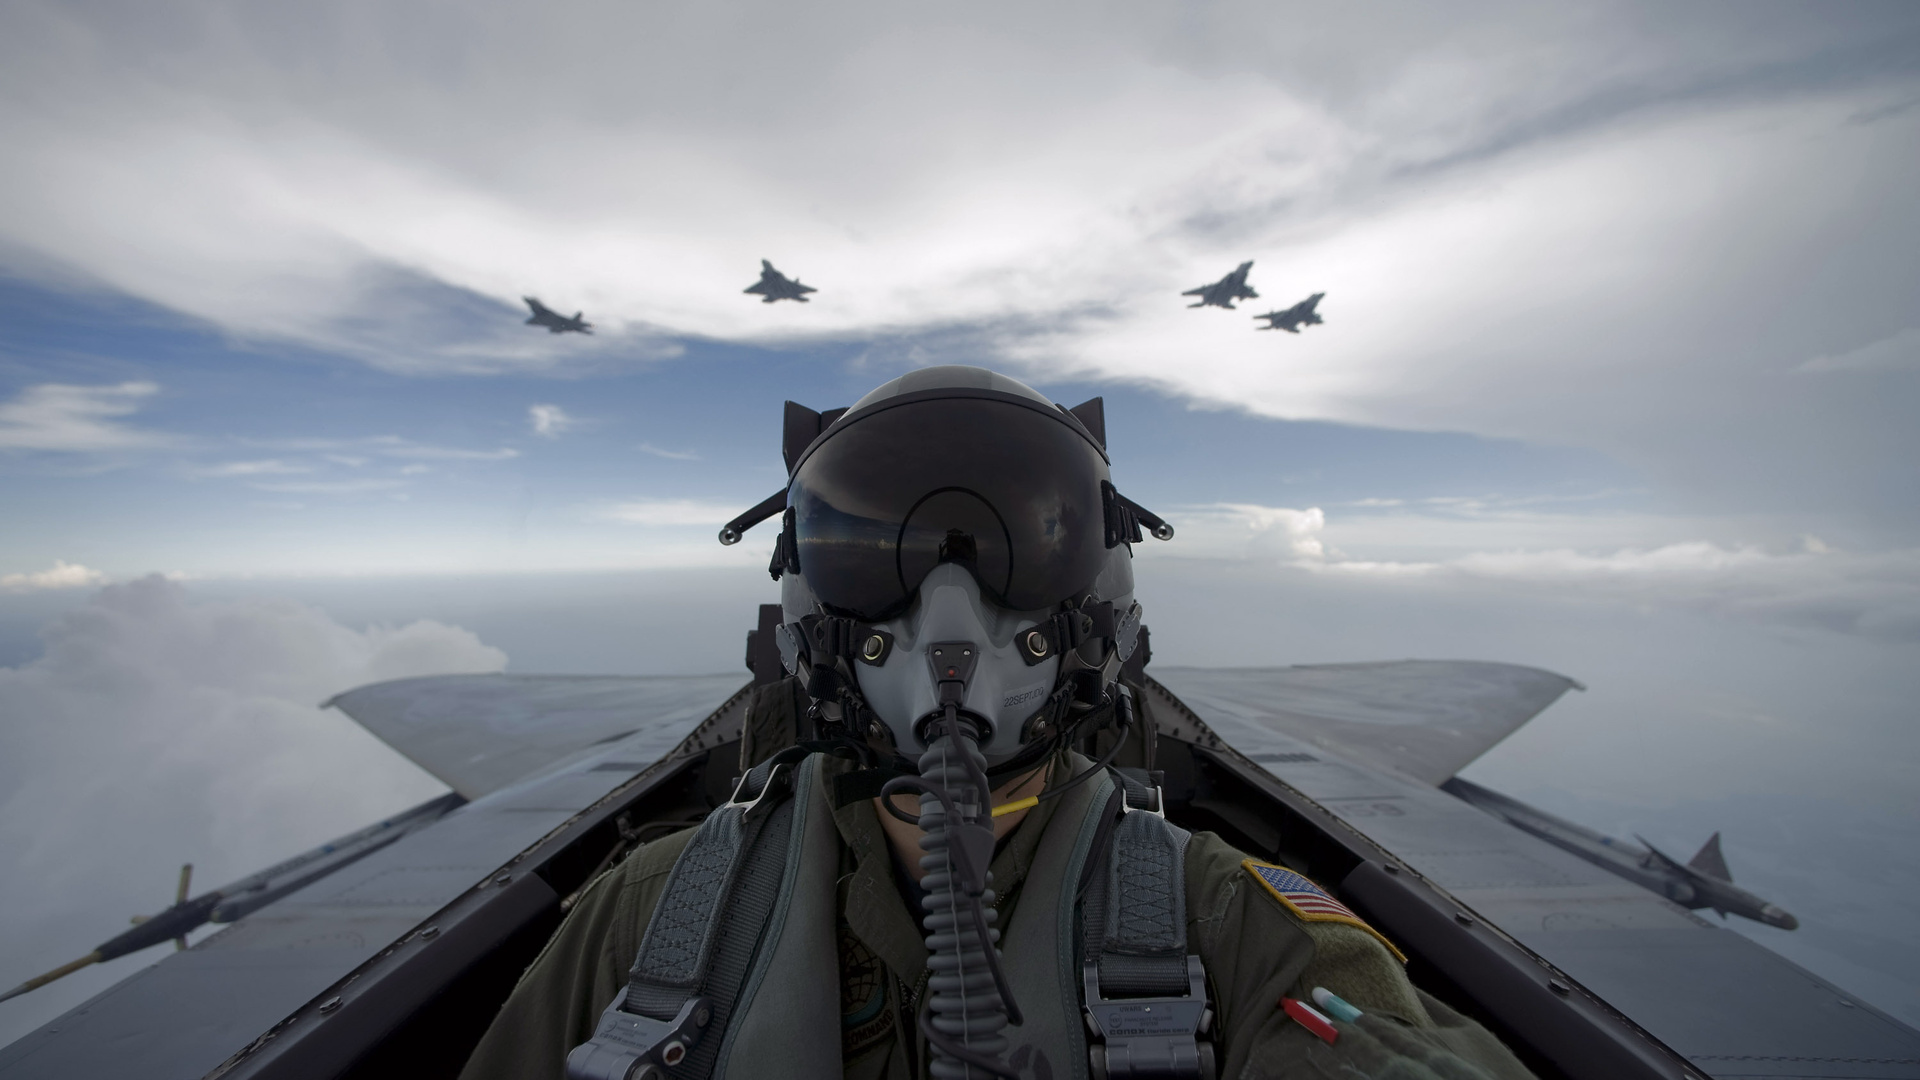 Photo pilot from the cockpit of military aircraft F15 Eagle (1920x1080)